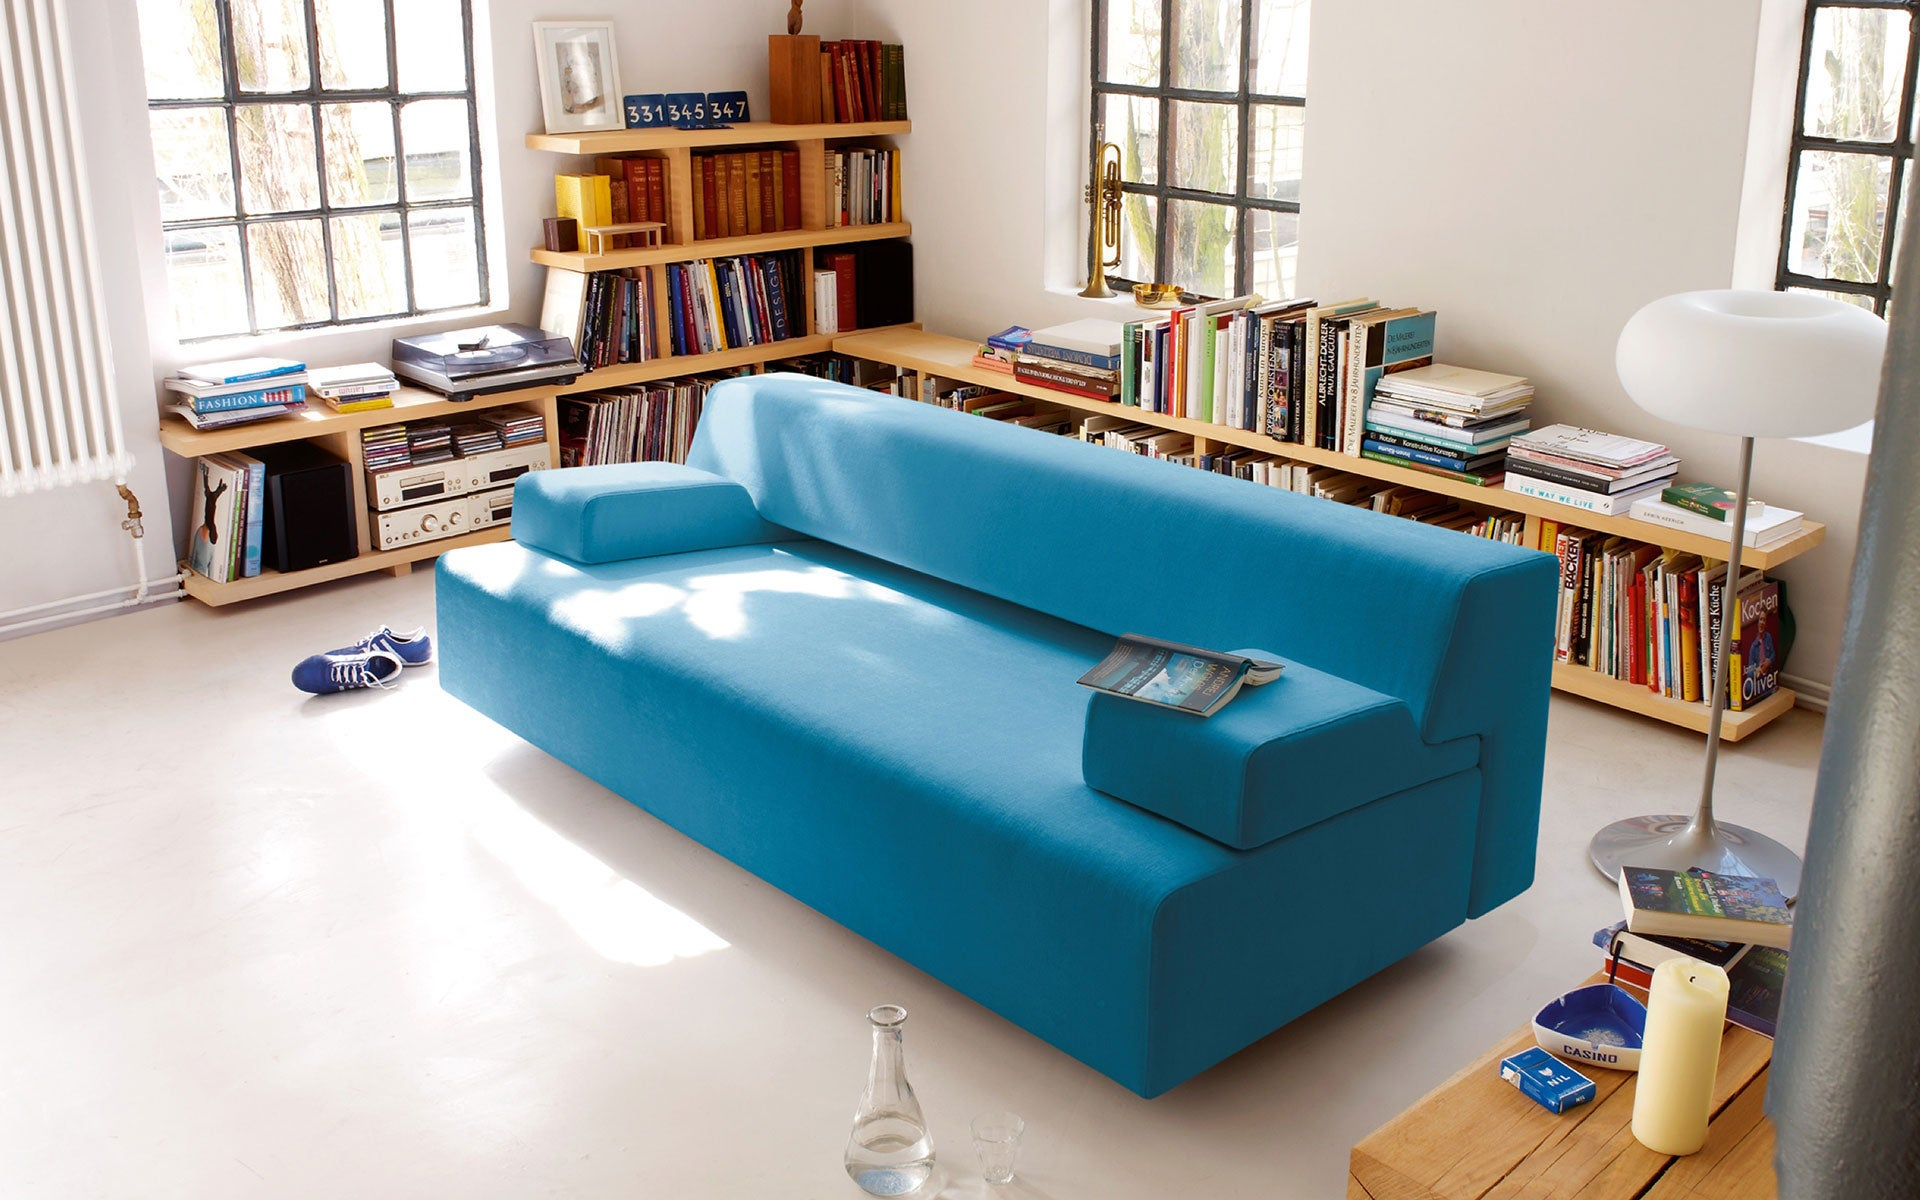 COR Cosma Sleeper Sofa In Fabric Or Leather For Sale At 1stdibs